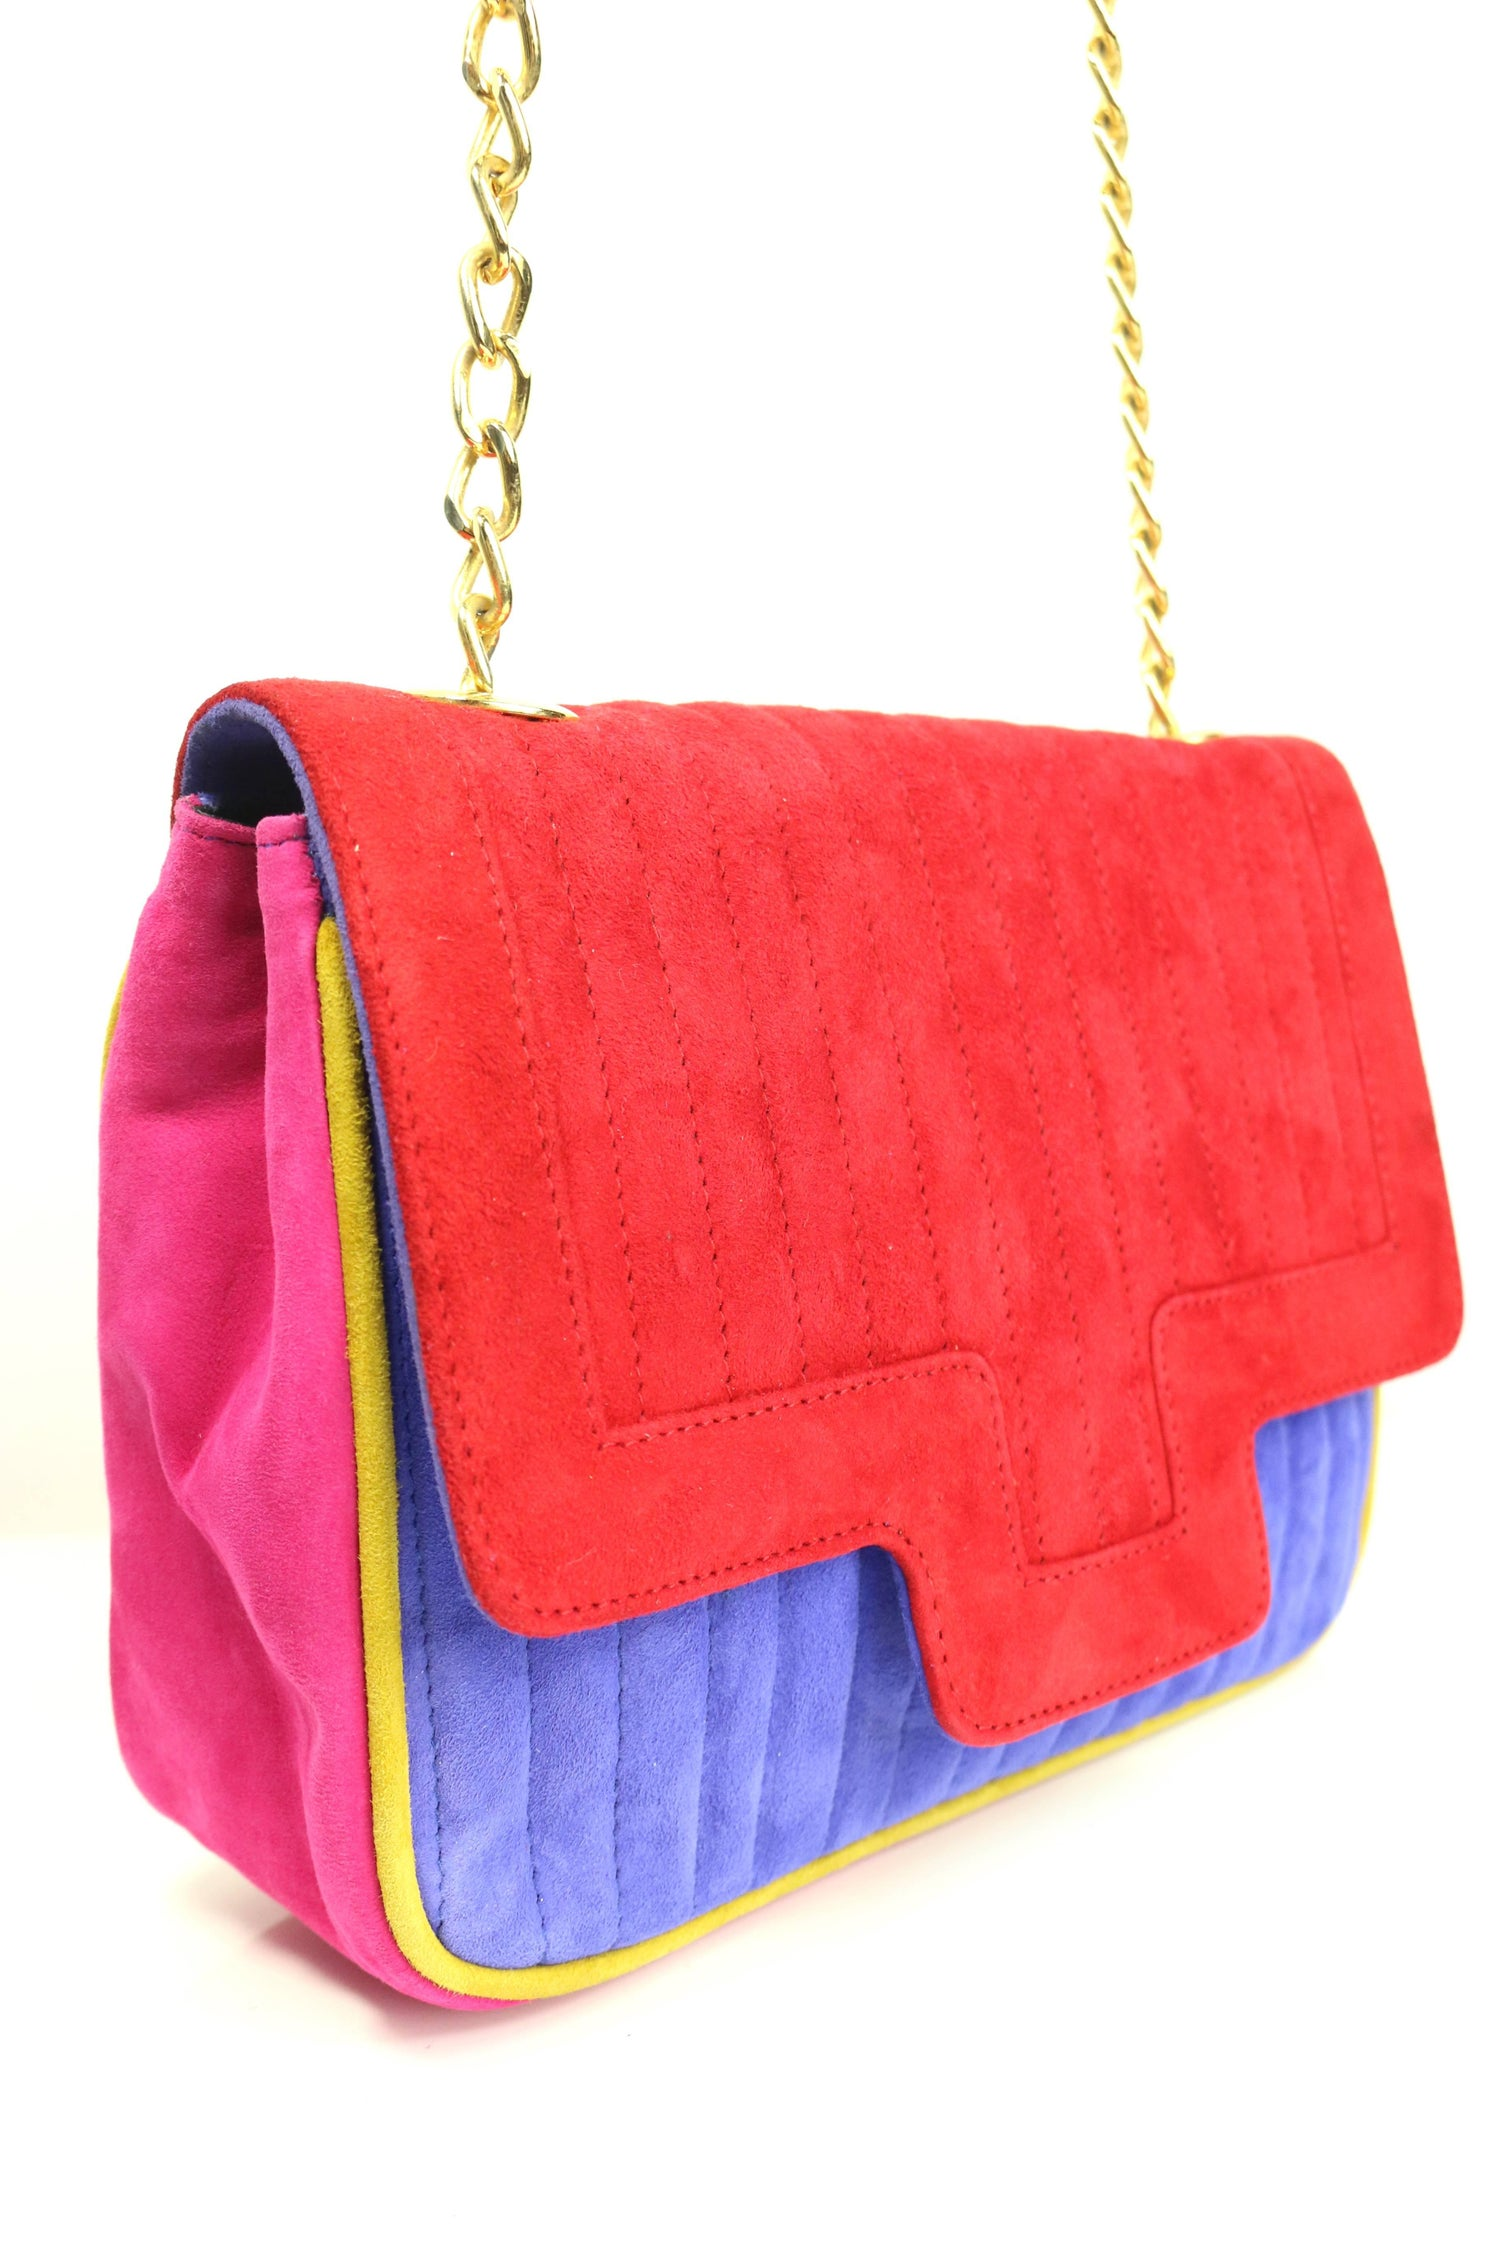 1stdibs Pancaldi Colour Blocked Suede Flap Shoulder Bag YZxH5